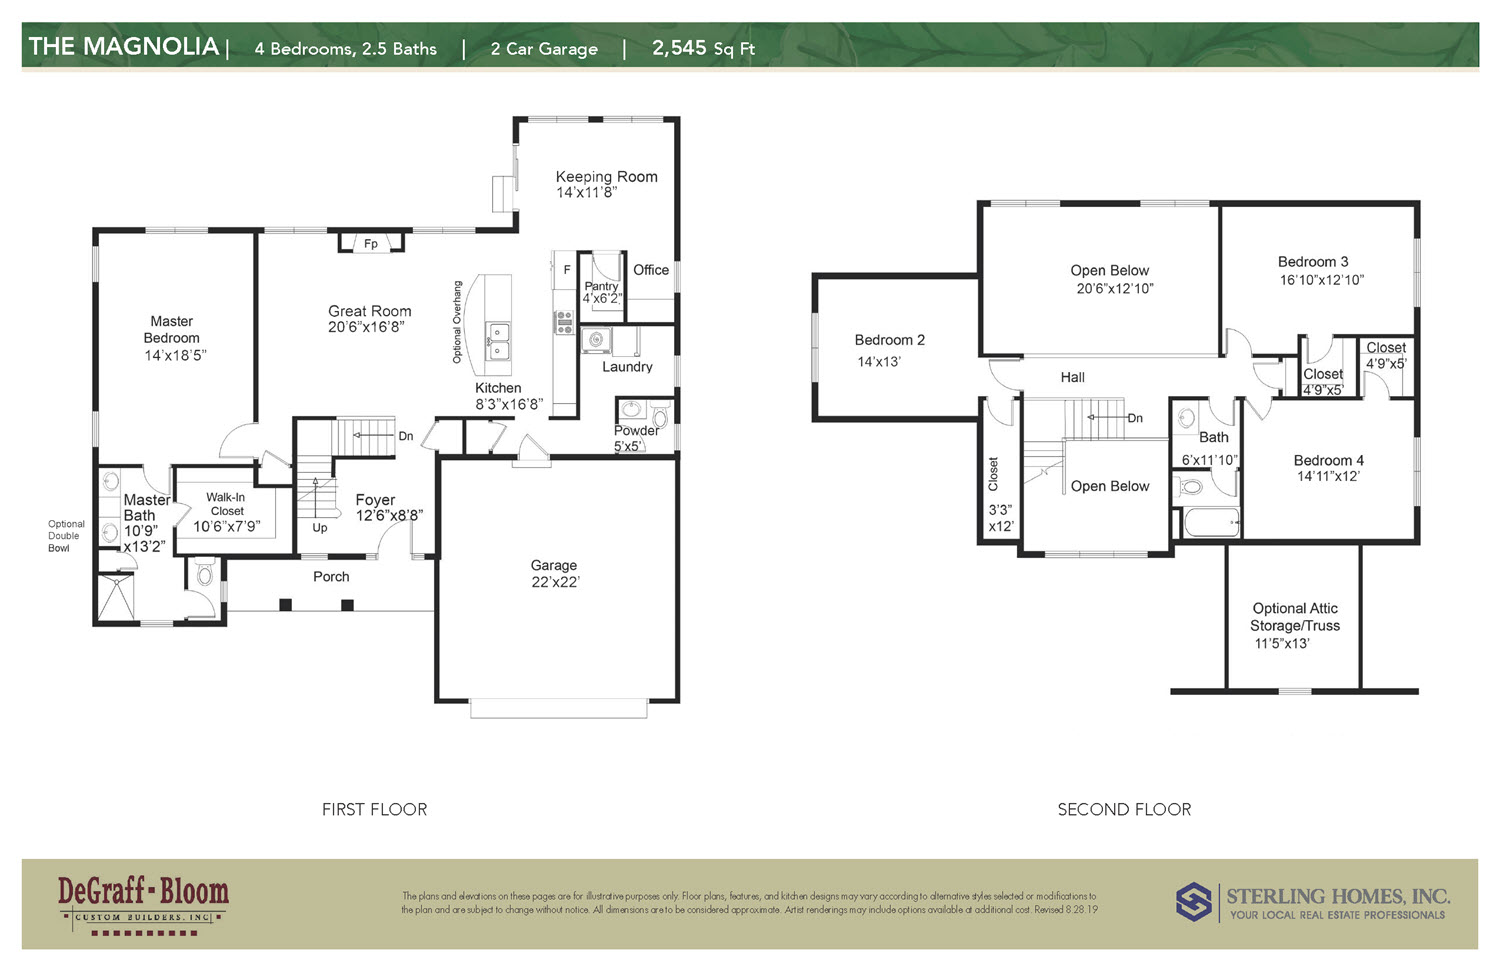 The Magnolia Floorplan